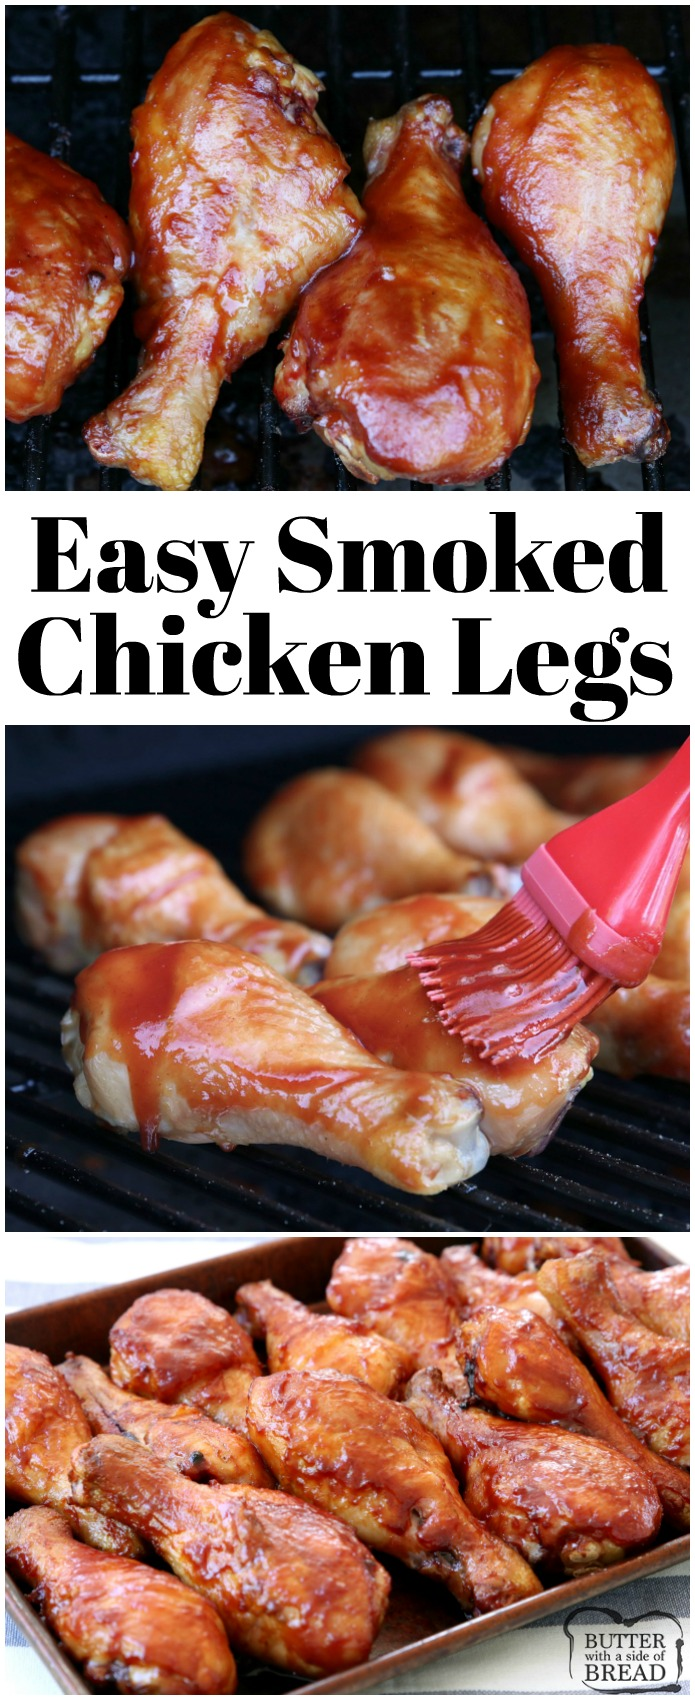 Easy Smoked Chicken Legs made with just a few simple ingredients in 2 hours. Simple recipe for smoking chicken drumsticks during your next BBQ. Perfect recipe to start learning how to use your electric smoker!#chicken #chickenlegs #traeger #smoke #smoker #dinner #grill #food